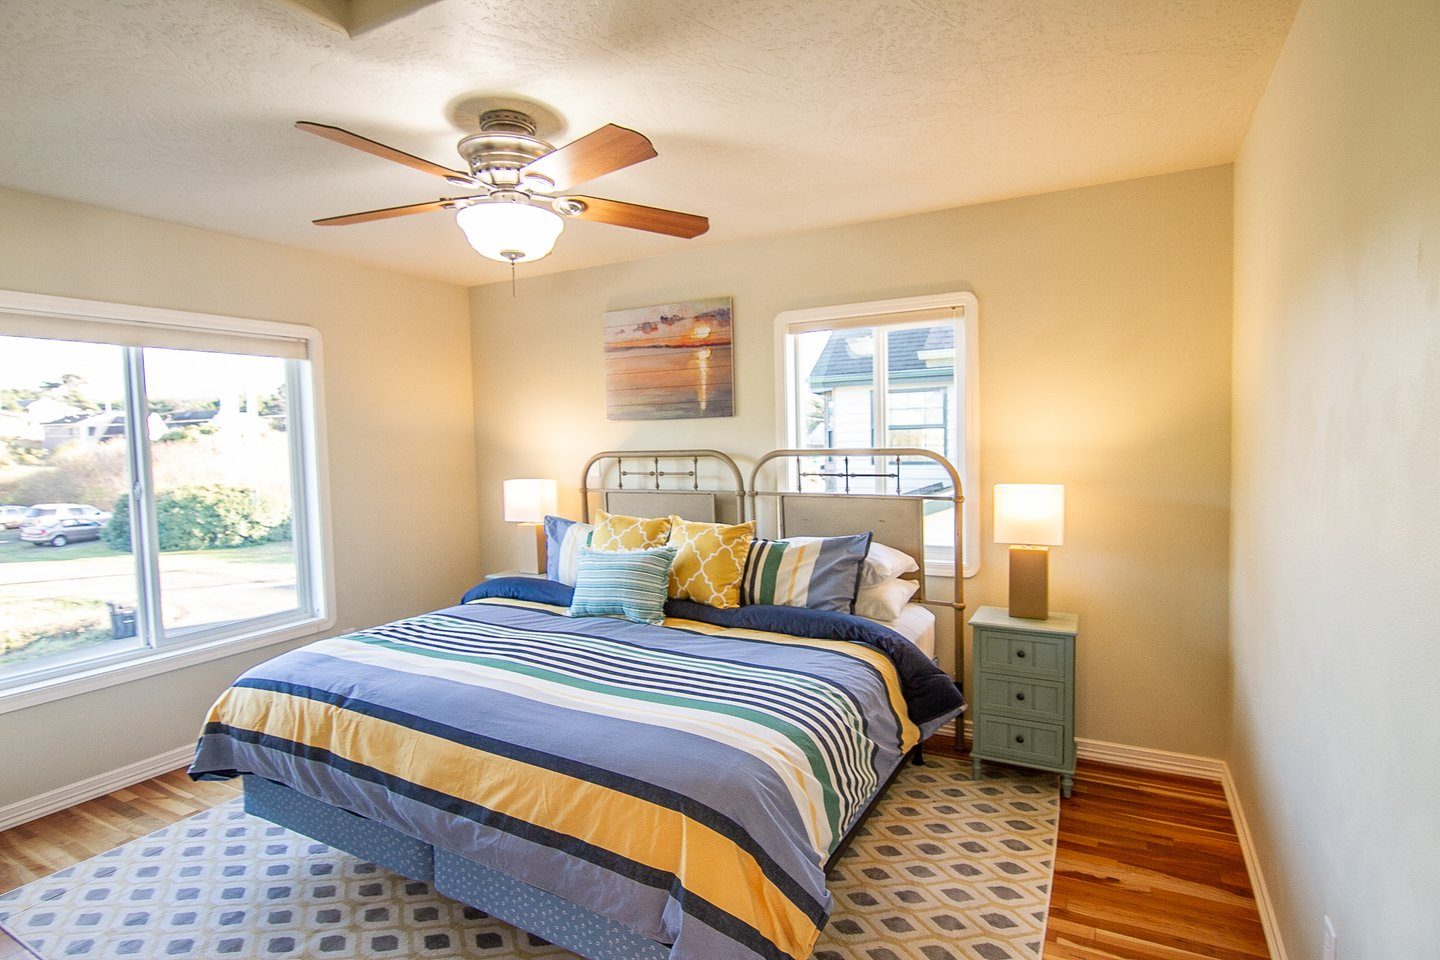 The third bedroom upstairs lets in lots of natural light.